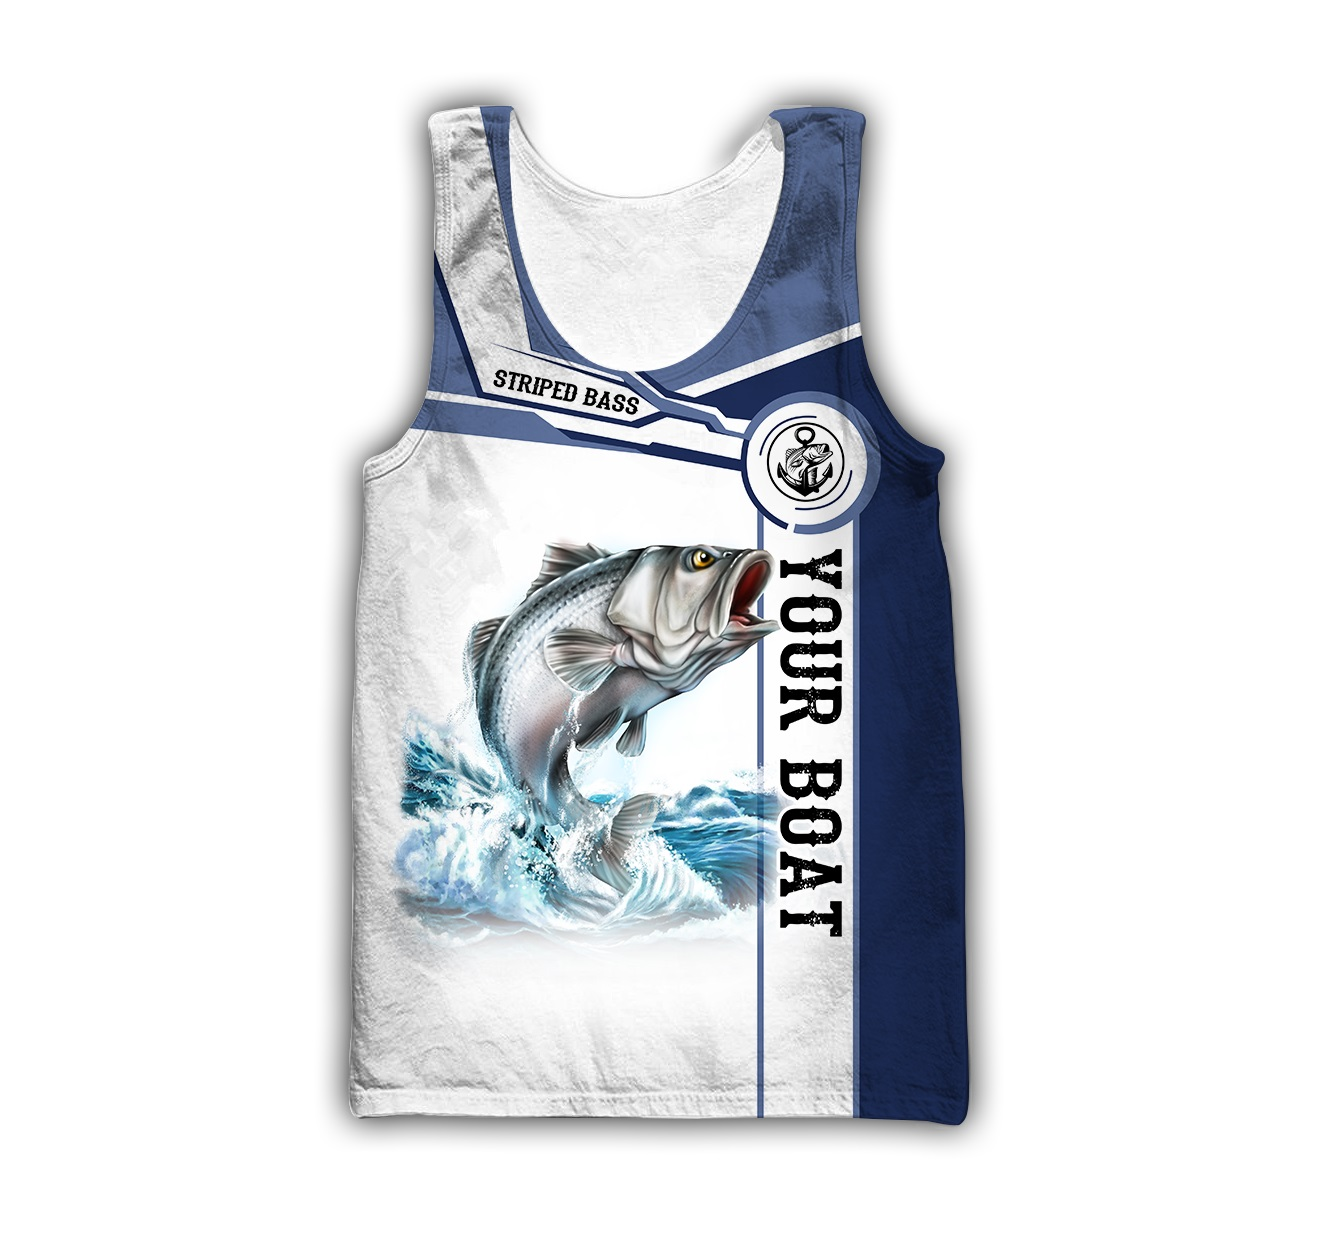 Personalized striped bass fishing catch and release 3d tank top